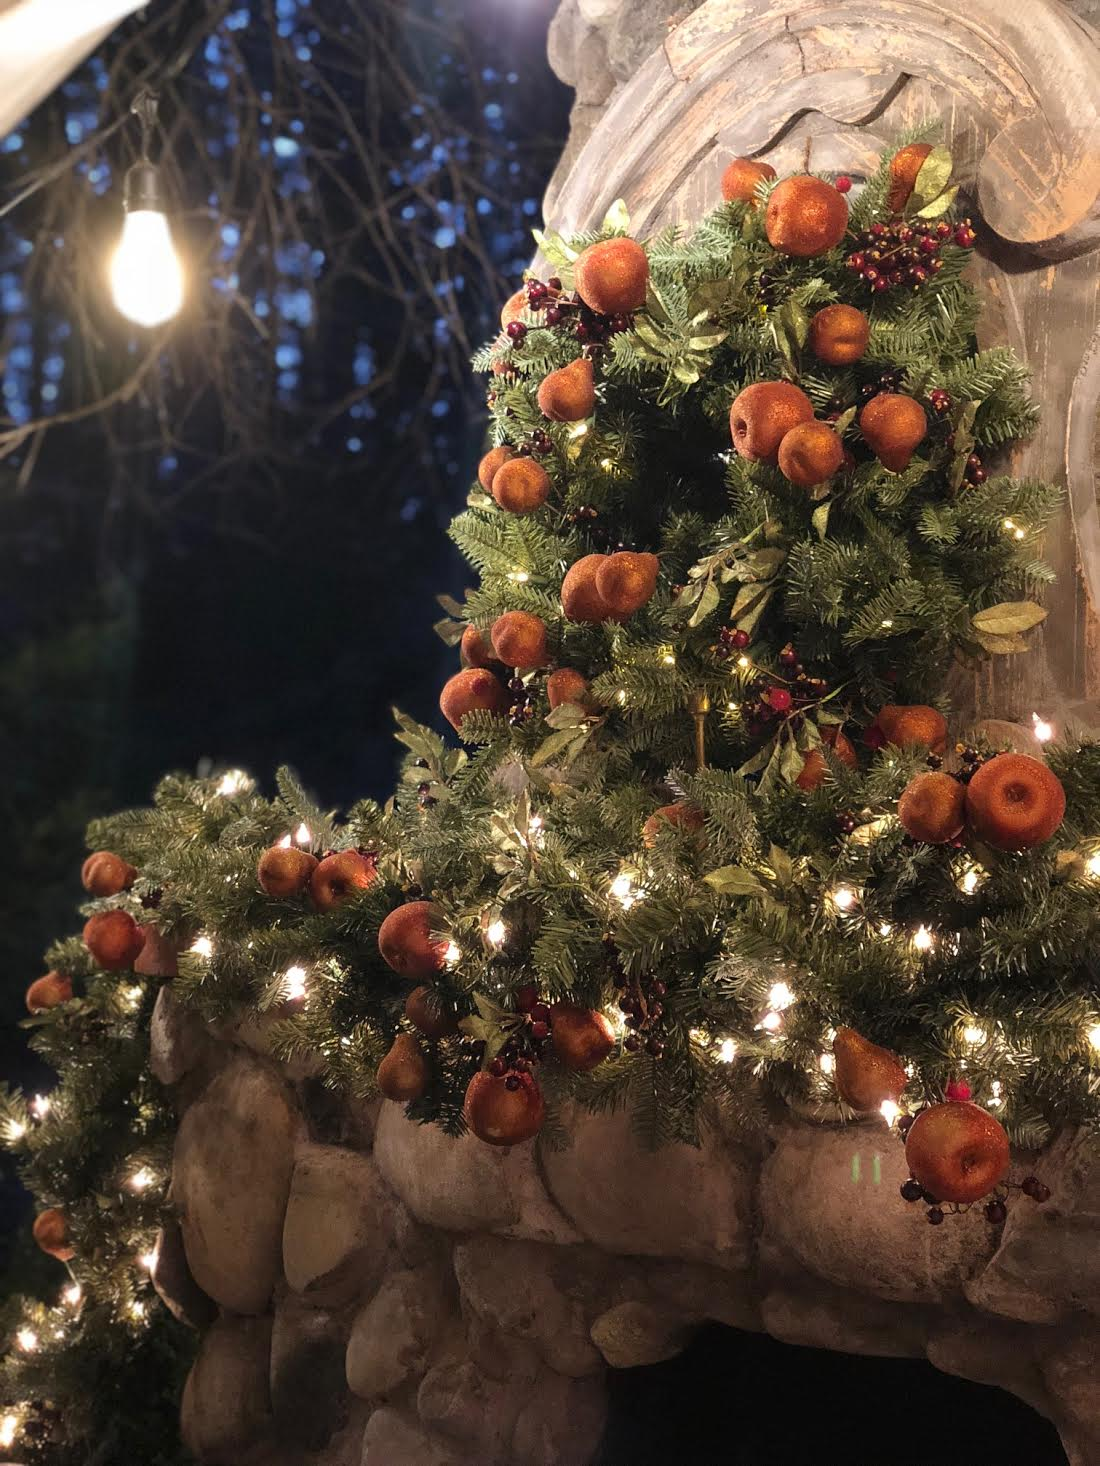 Enchanting Outdoor Christmas Decor With Twinkly Lights